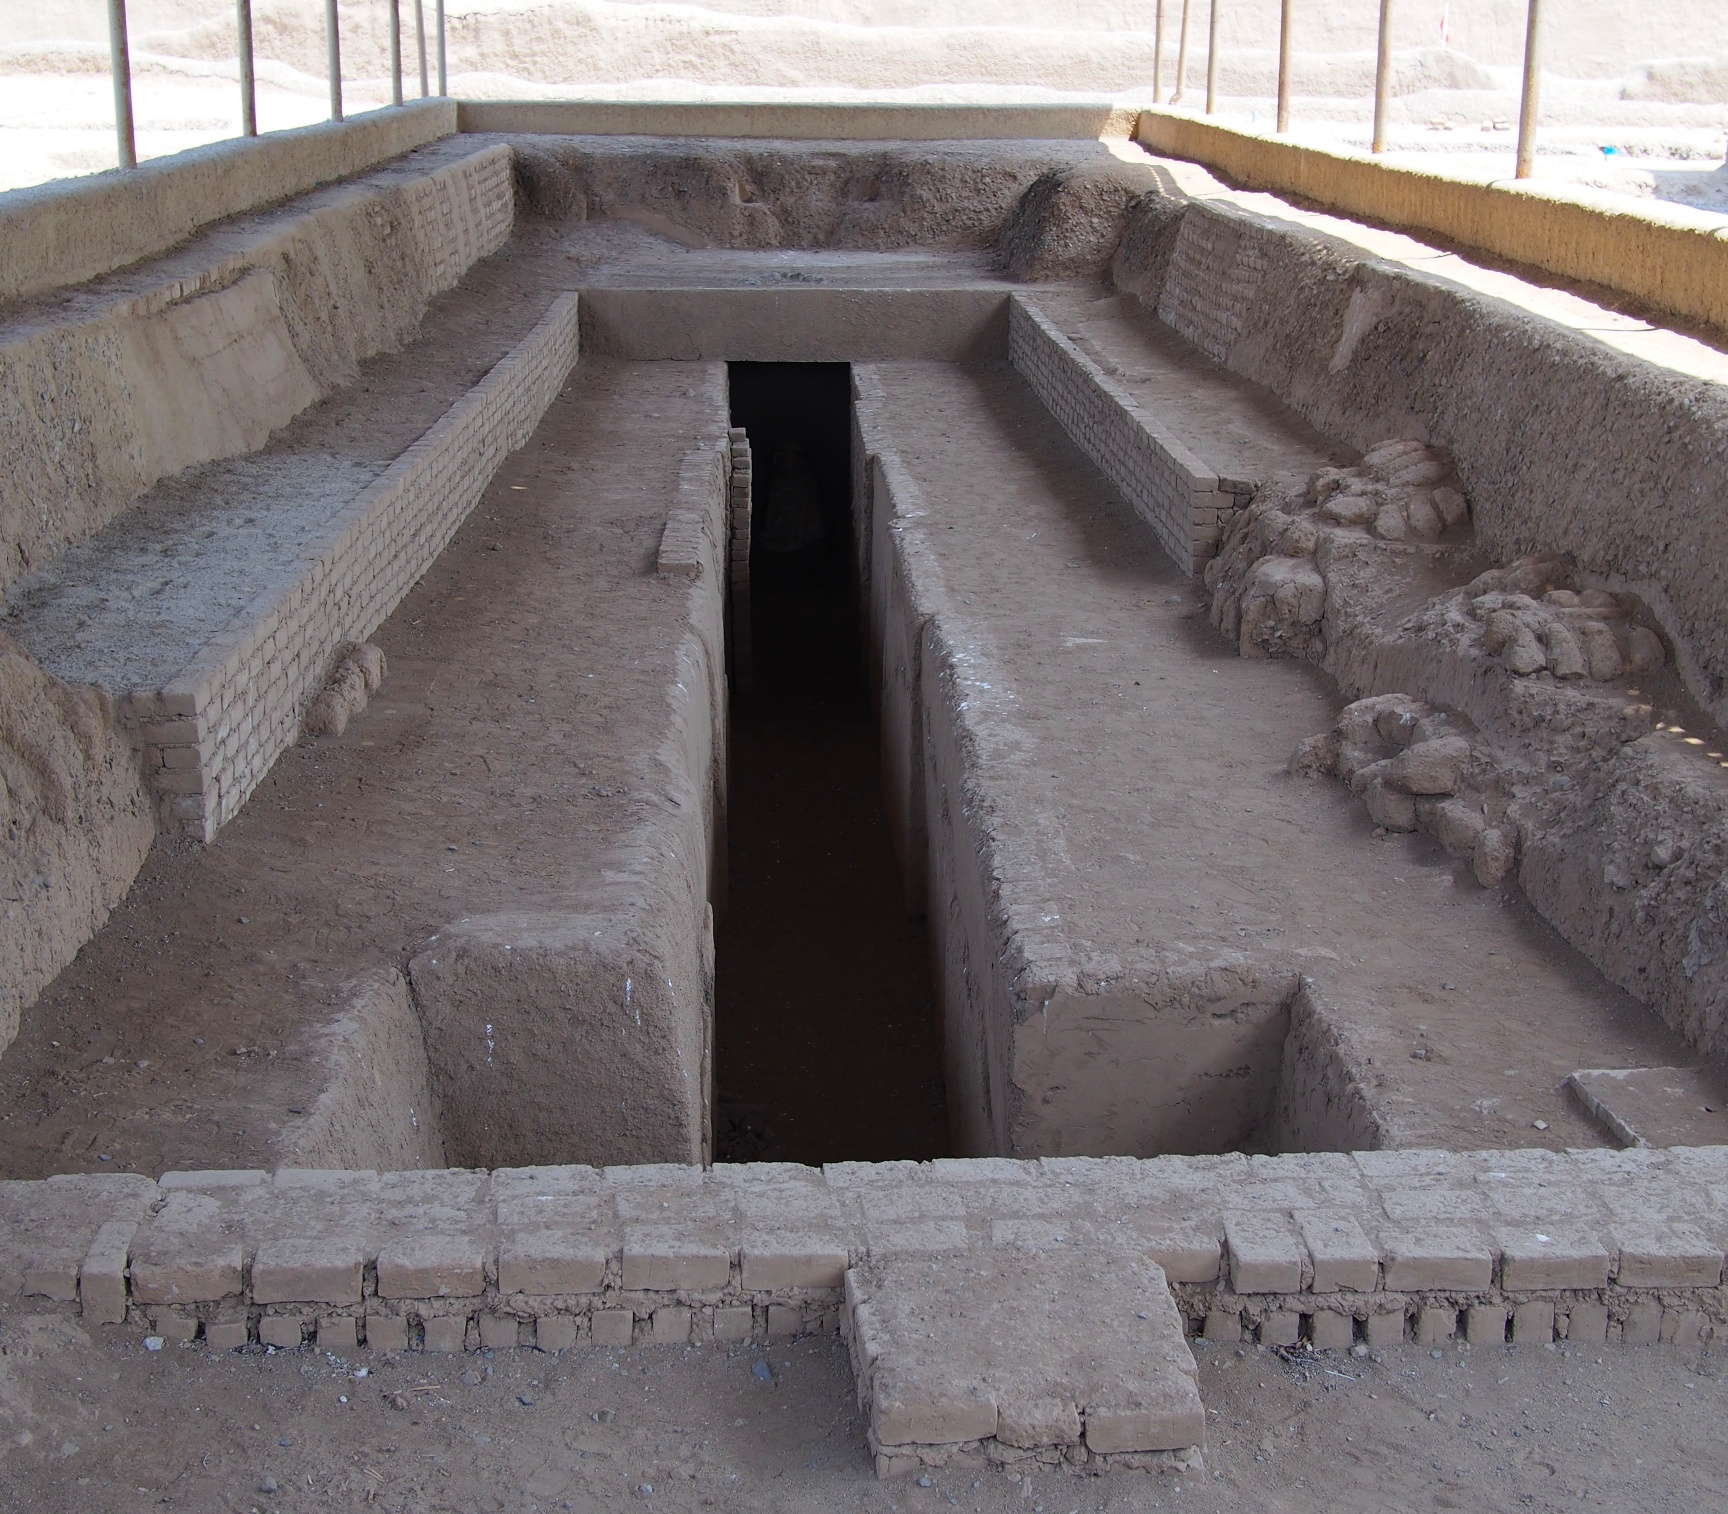 The King was buried - usually sitting up - in the pit, around which his retinue was buried